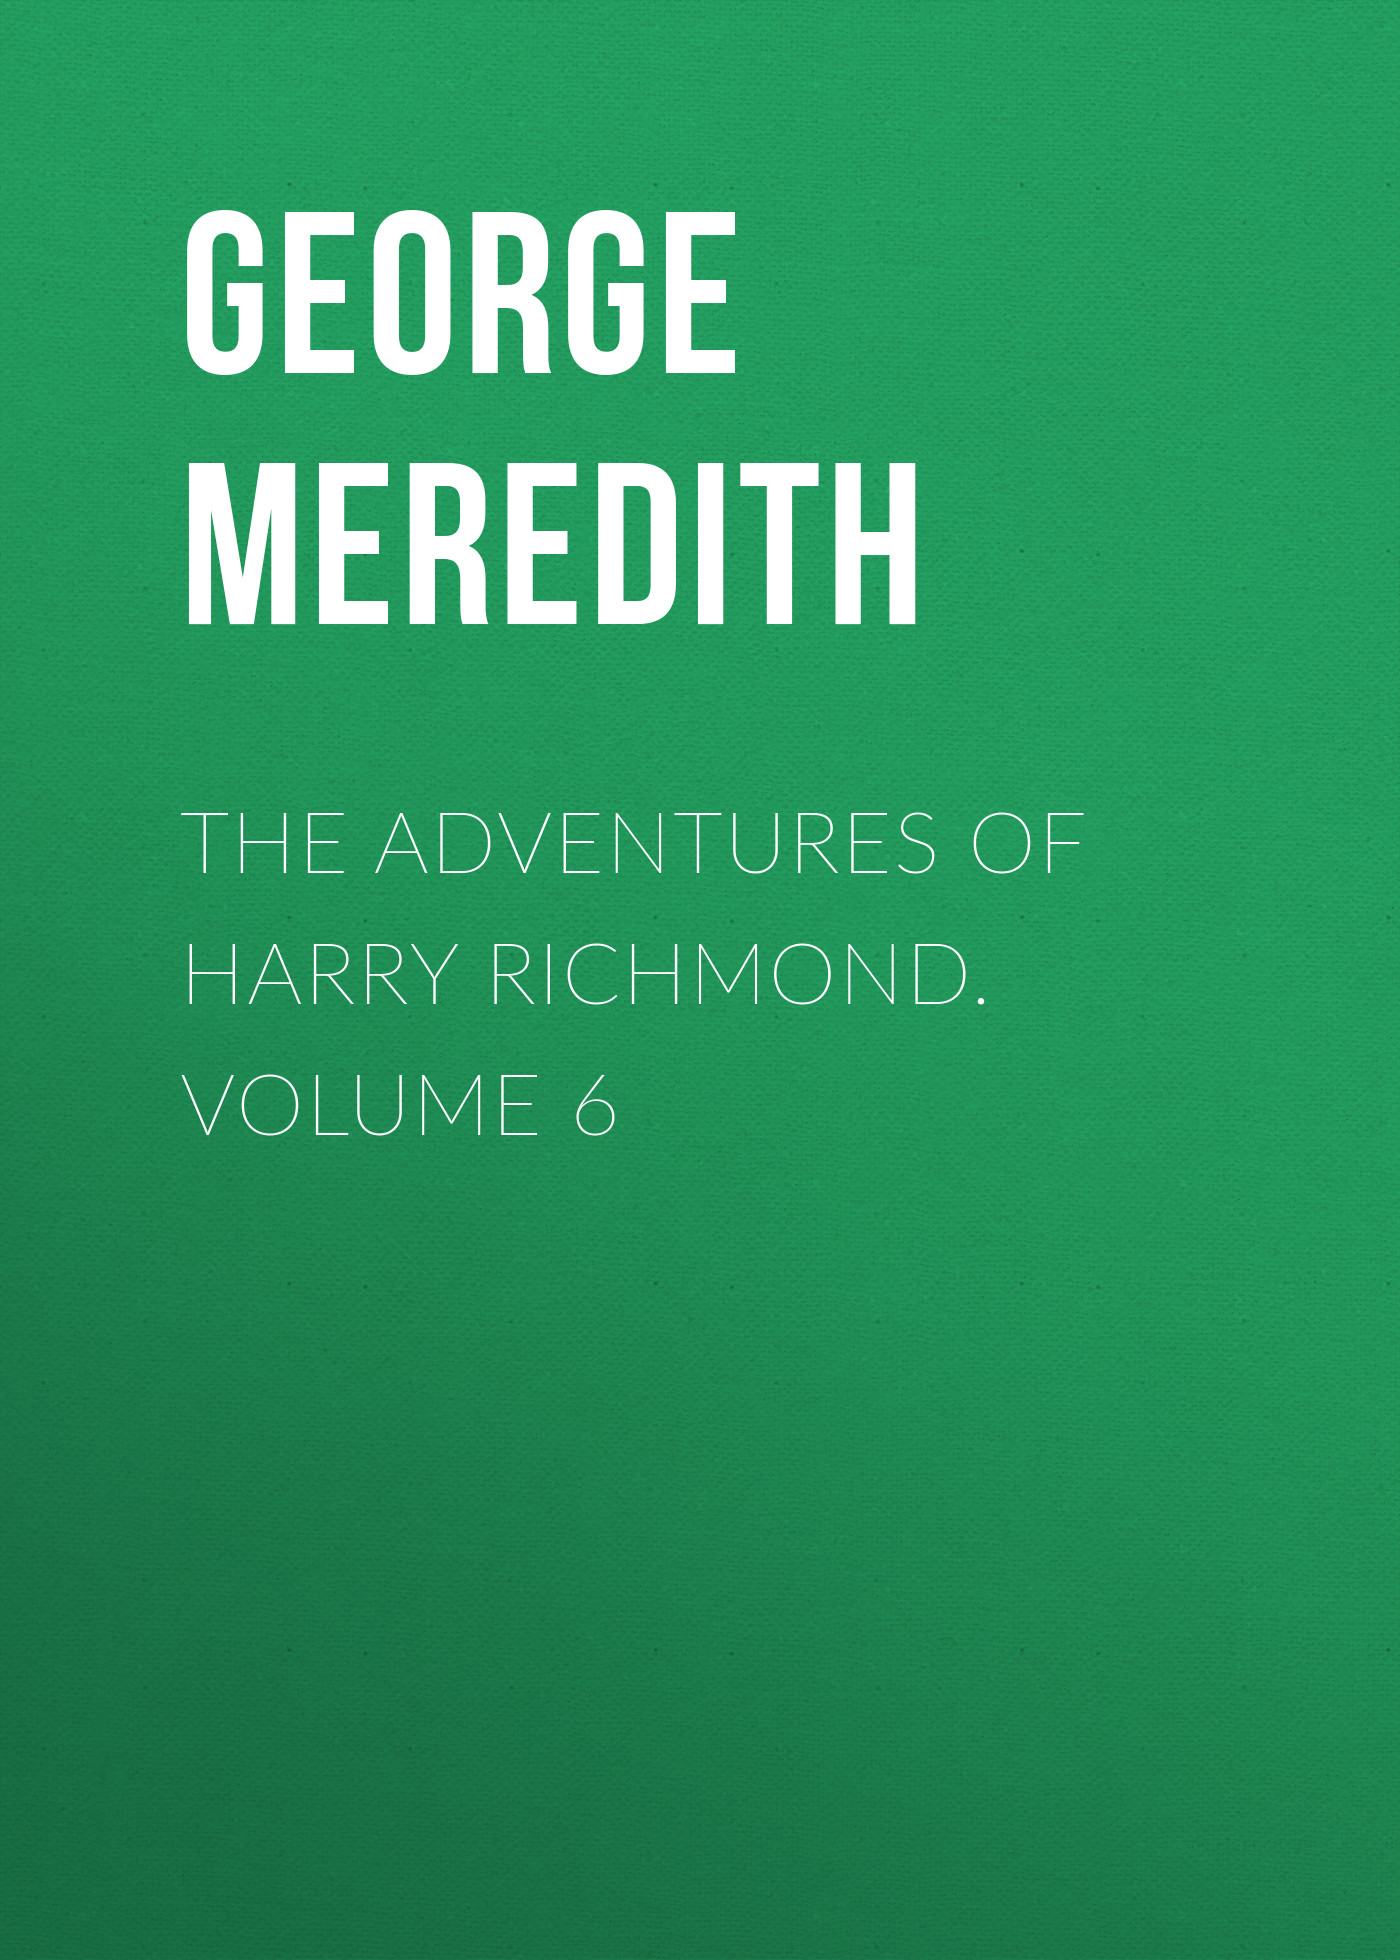 цена George Meredith The Adventures of Harry Richmond. Volume 6 в интернет-магазинах